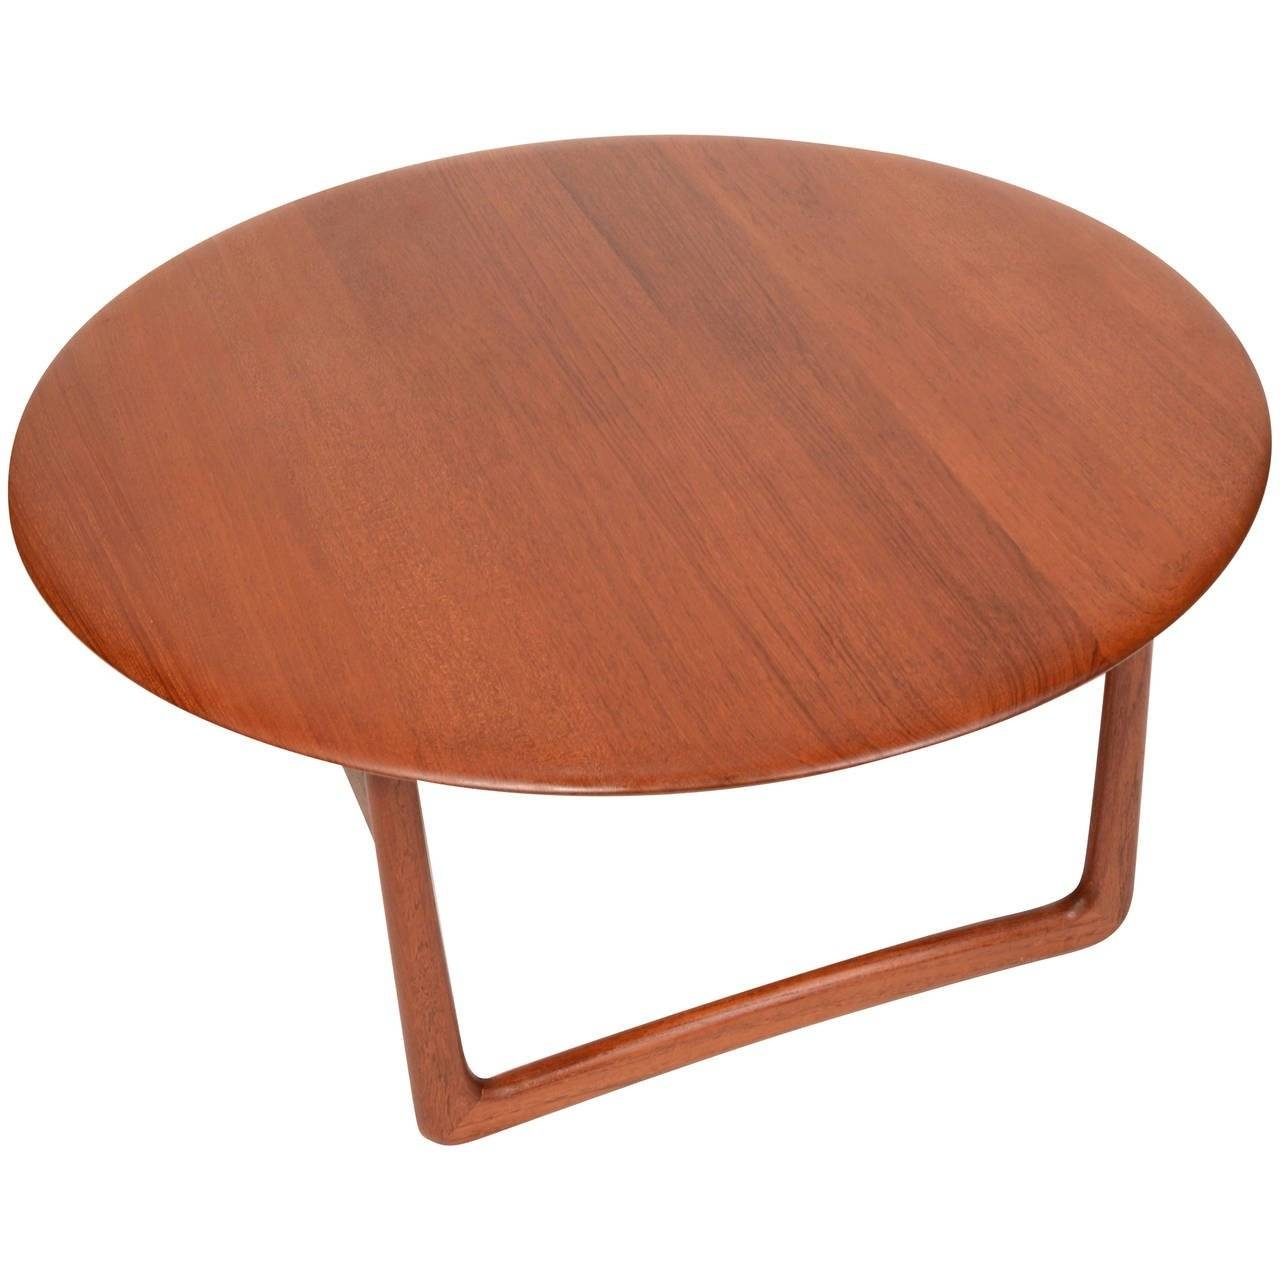 Solid Teak Danish Modern Round Coffee Tablepovl Dinesen For throughout Solid Round Coffee Tables (Image 27 of 30)